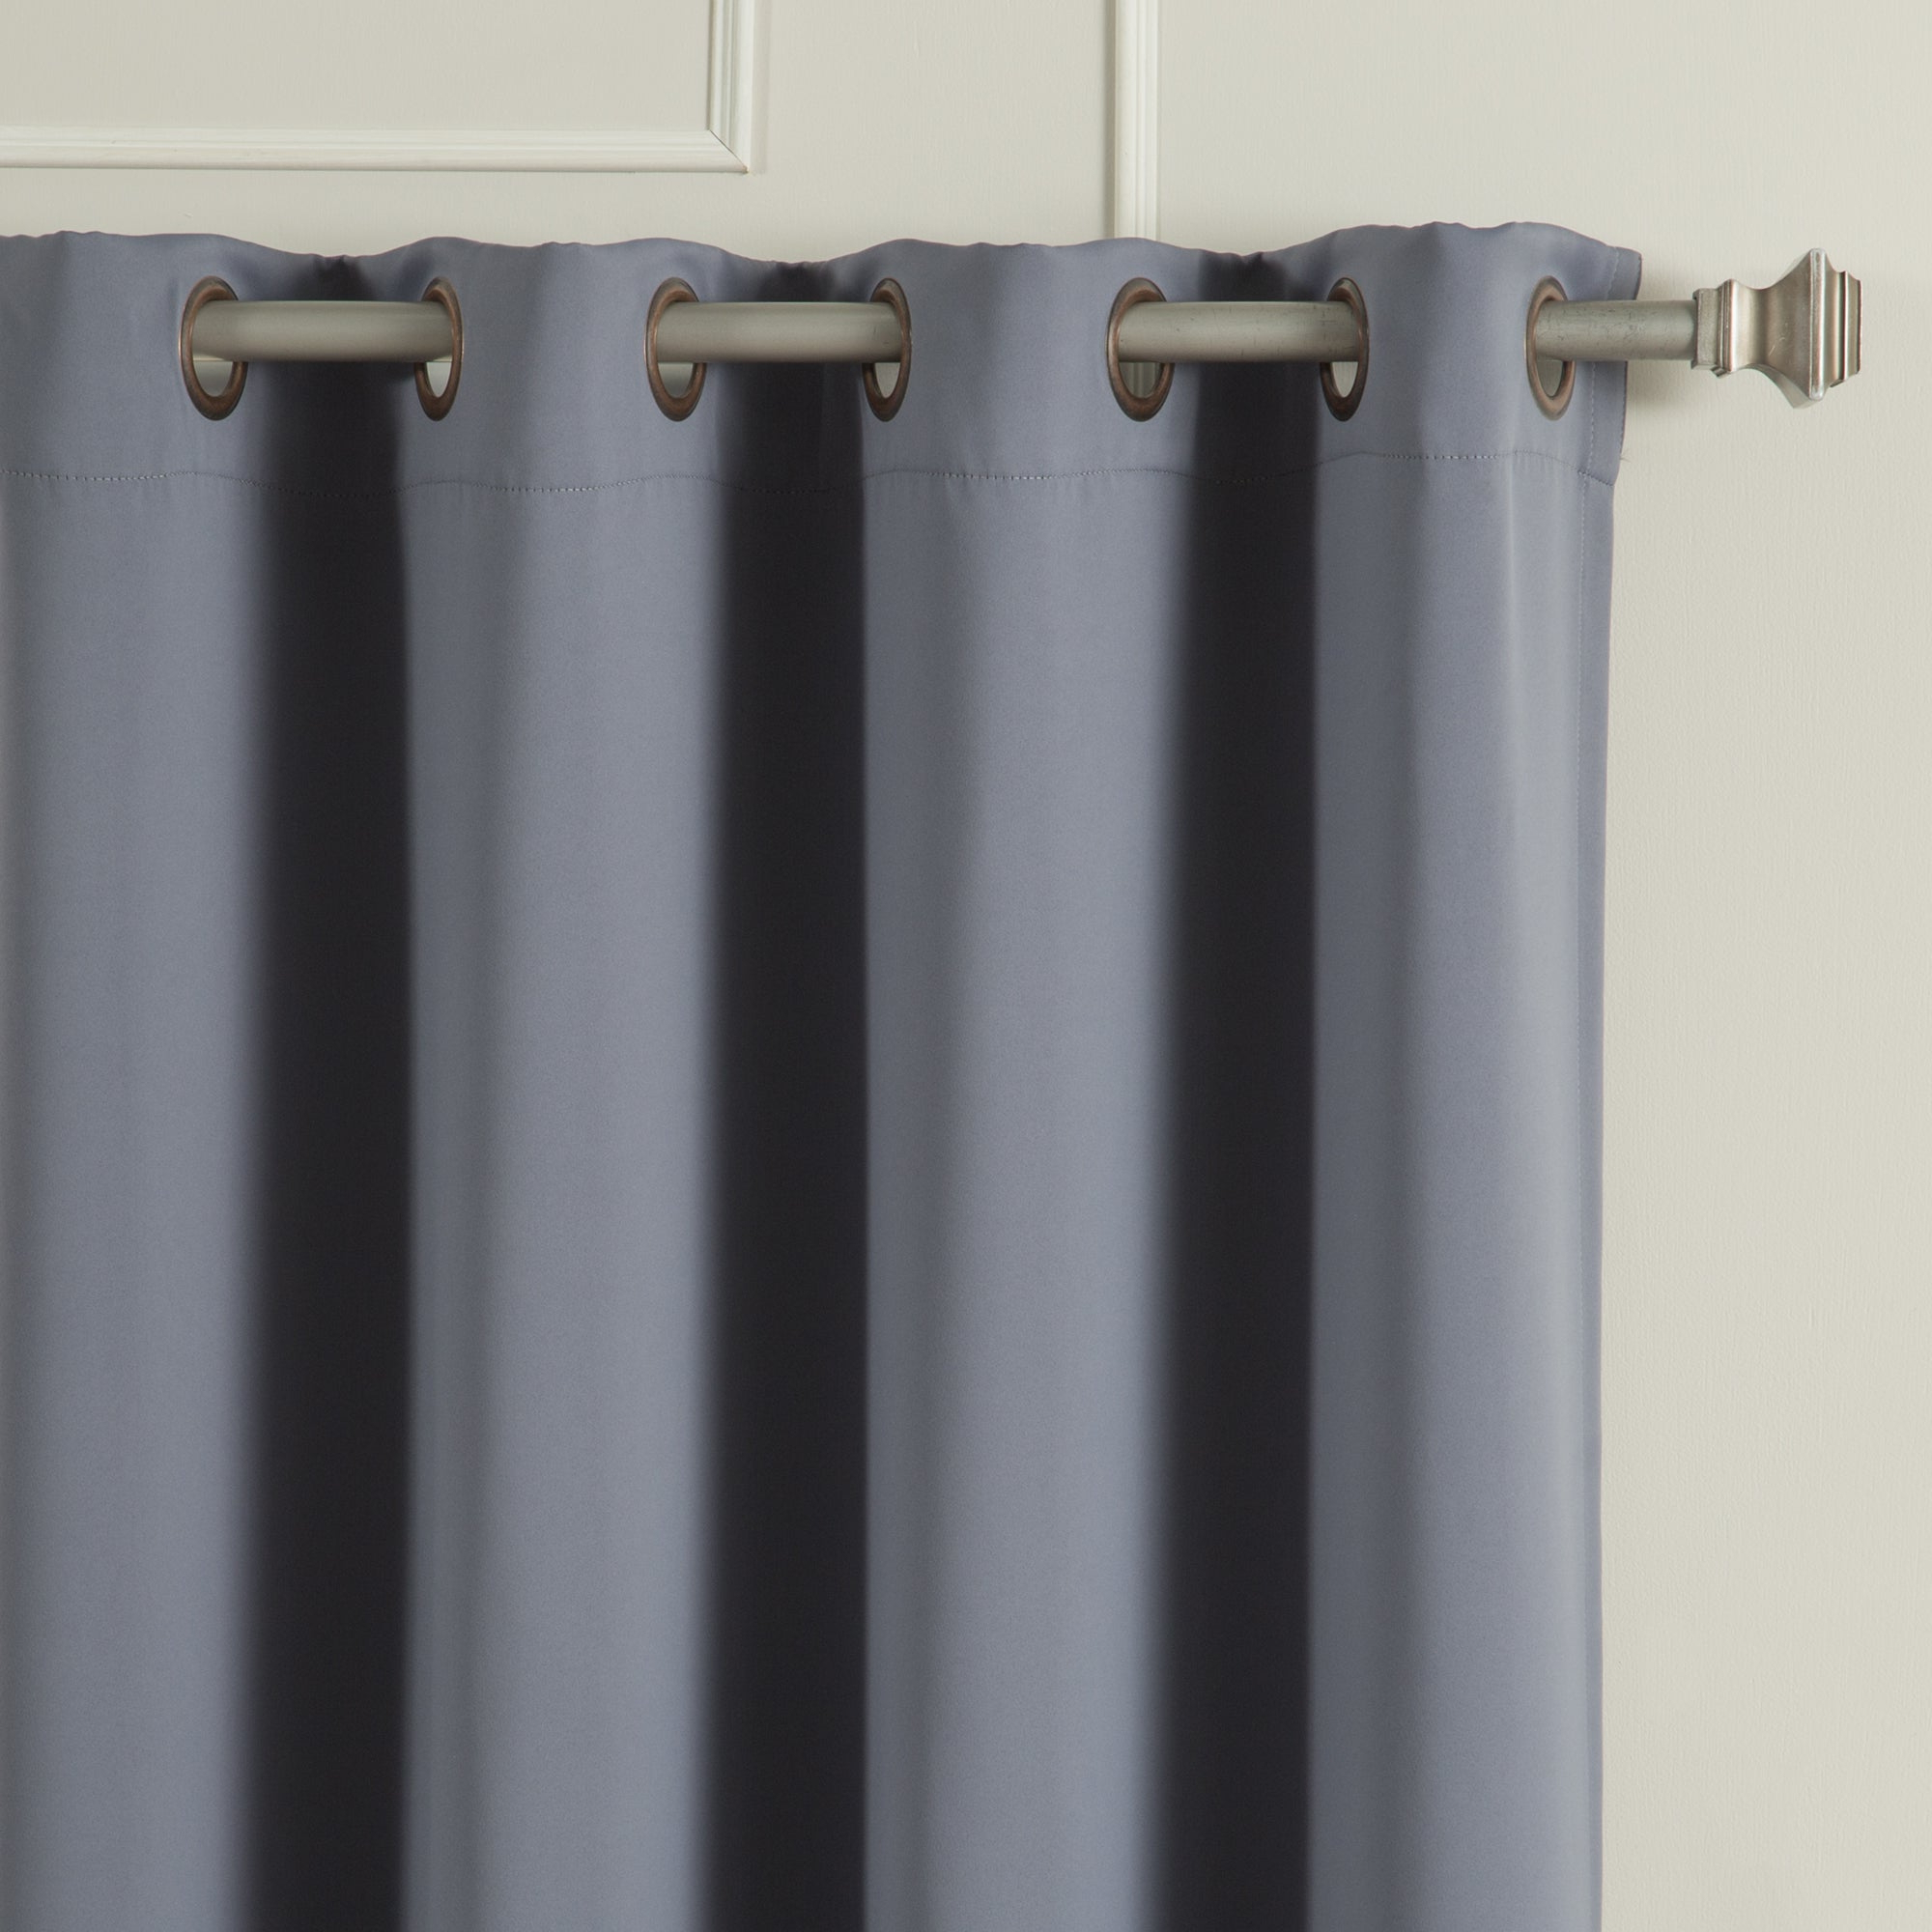 Antique Silver Grommet Top Thermal Insulated Blackout Curtain Panel Pairs Throughout 2021 Aurora Home Antique Silver Grommet Top Thermal Insulated Blackout Curtain Panel Pair (View 10 of 20)